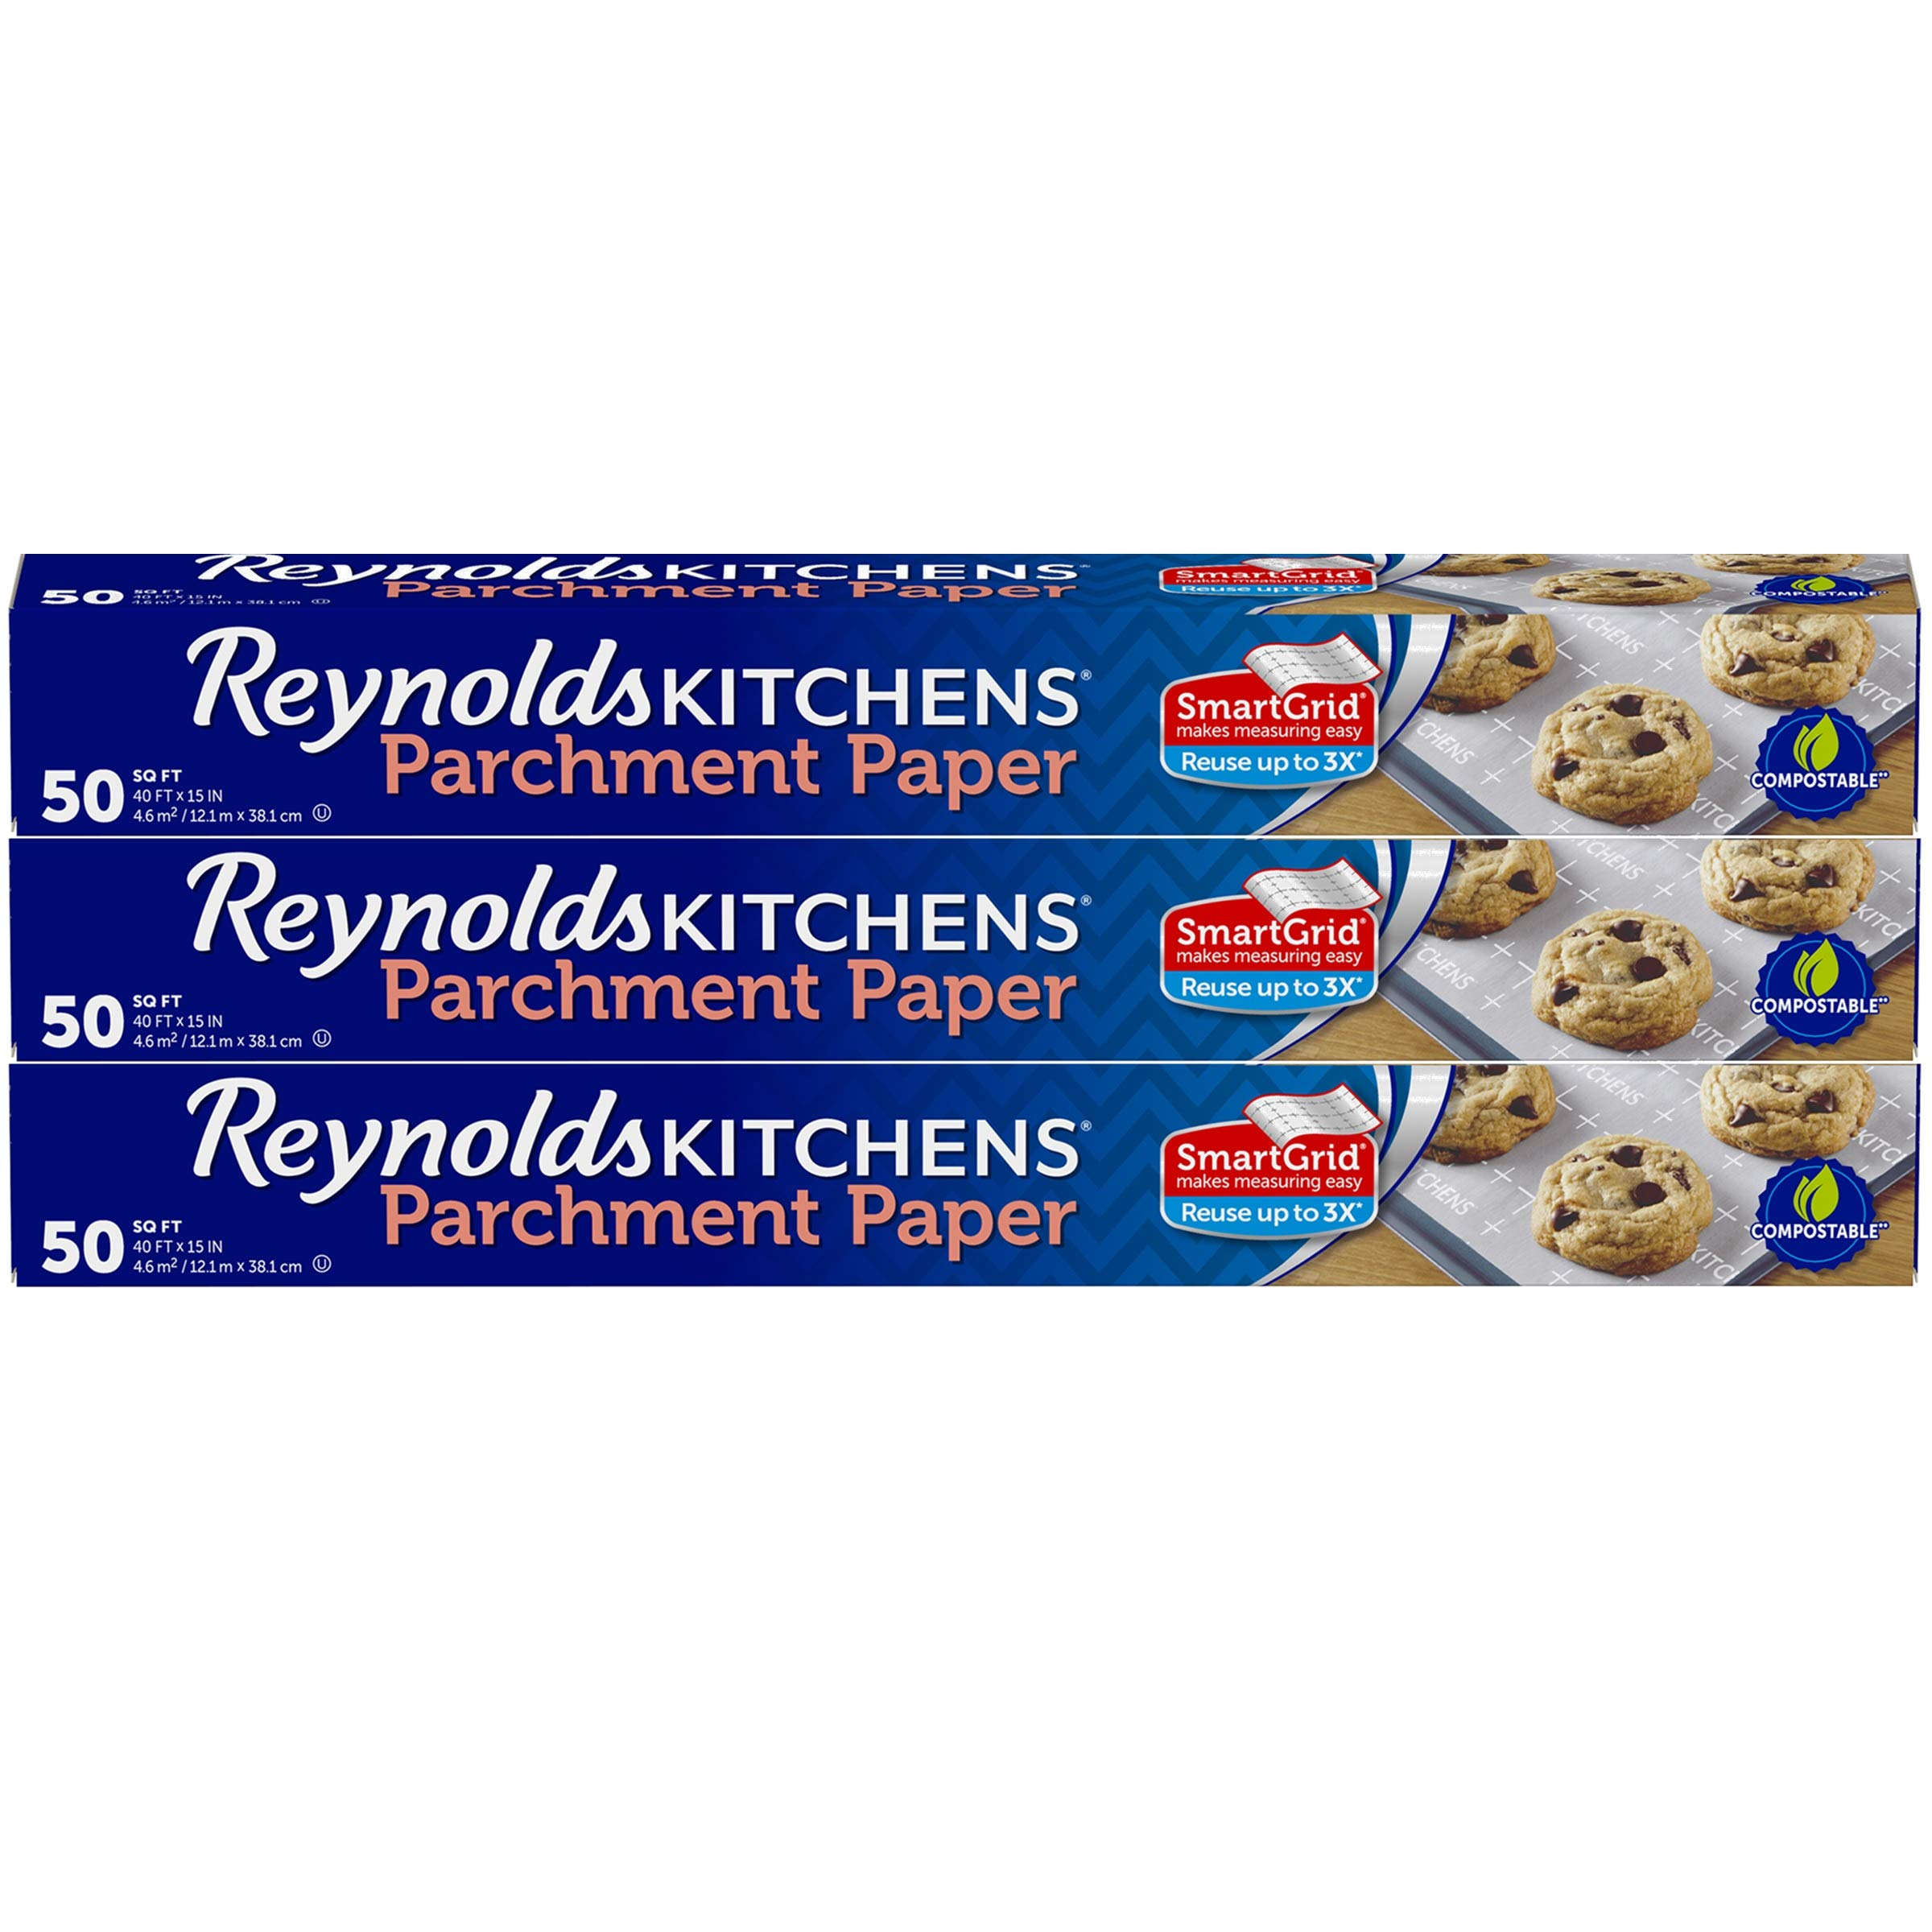 Reynolds Kitchens Parchment Paper Roll with SmartGrid - 3 Boxes of 50 Square Feet (150 Square Feet Total) by Reynolds